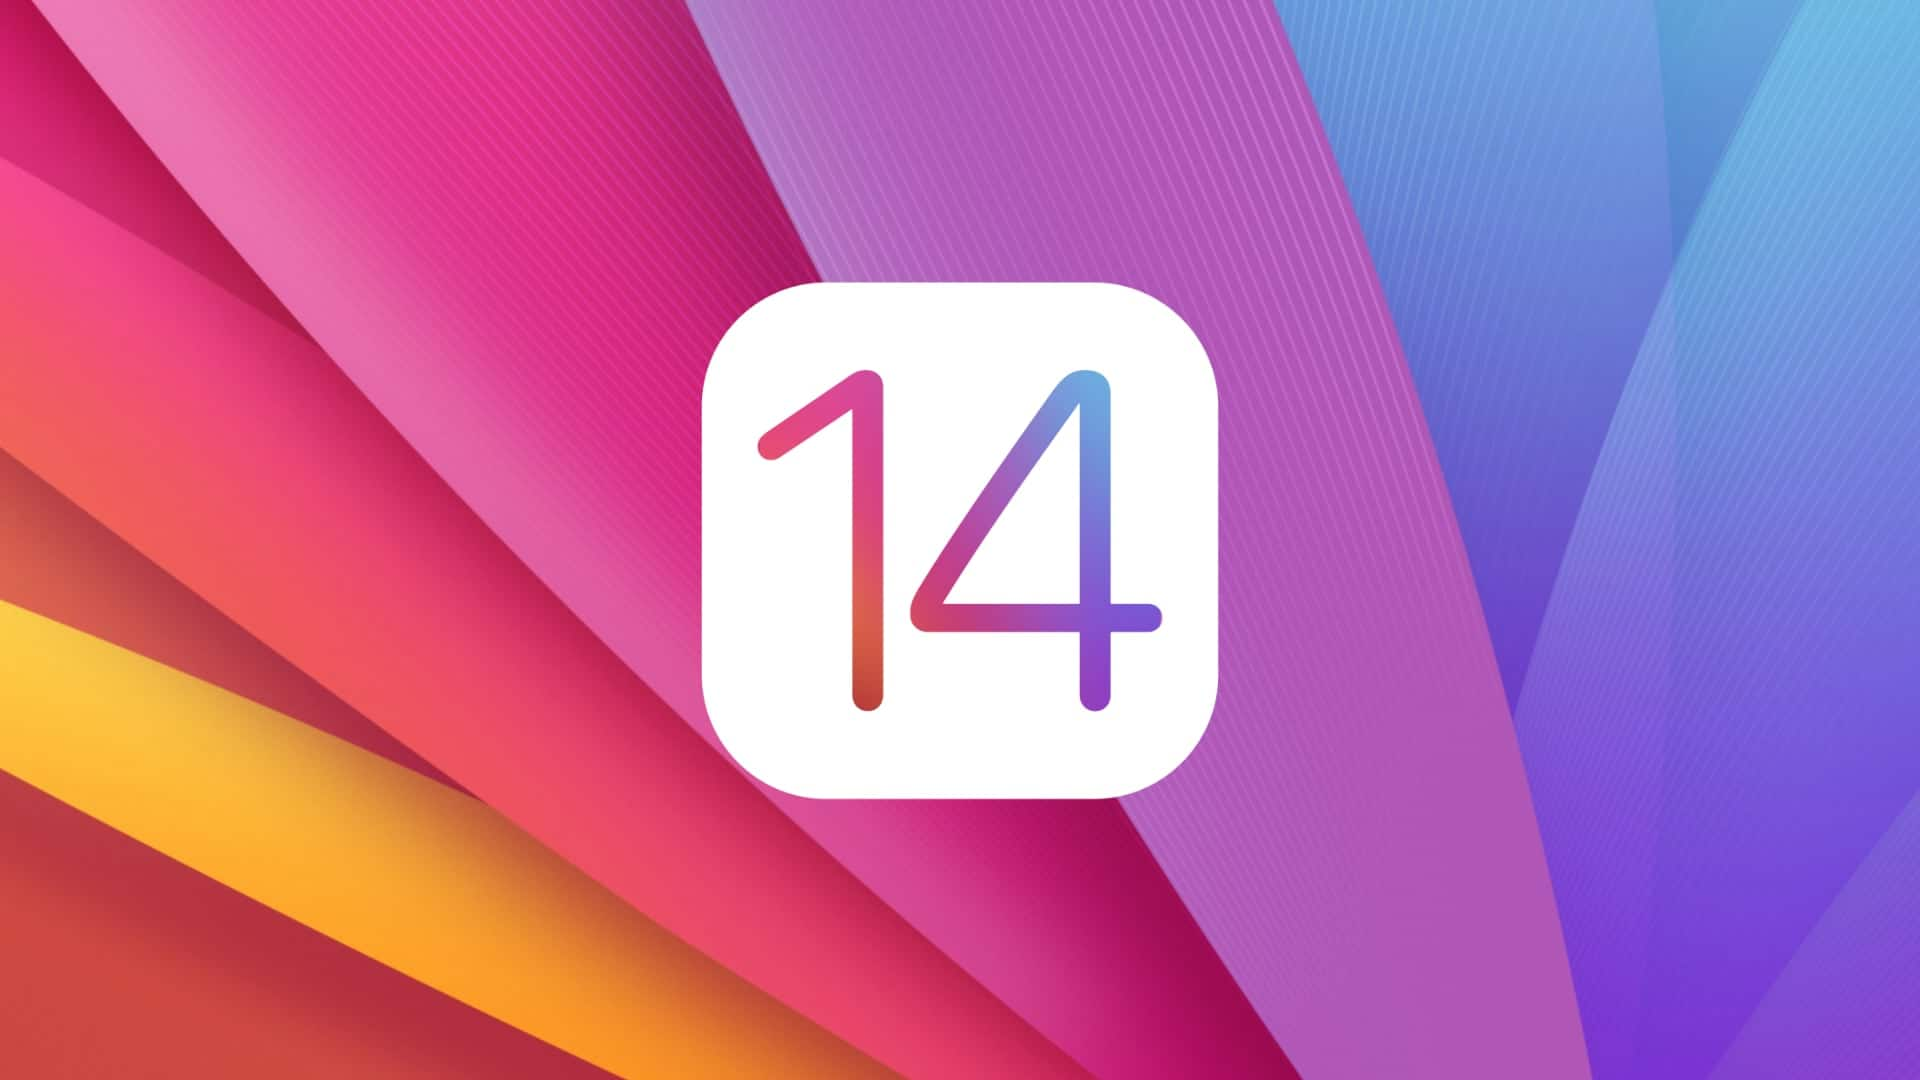 Ios 14 Every Leak And Rumor Appletrack